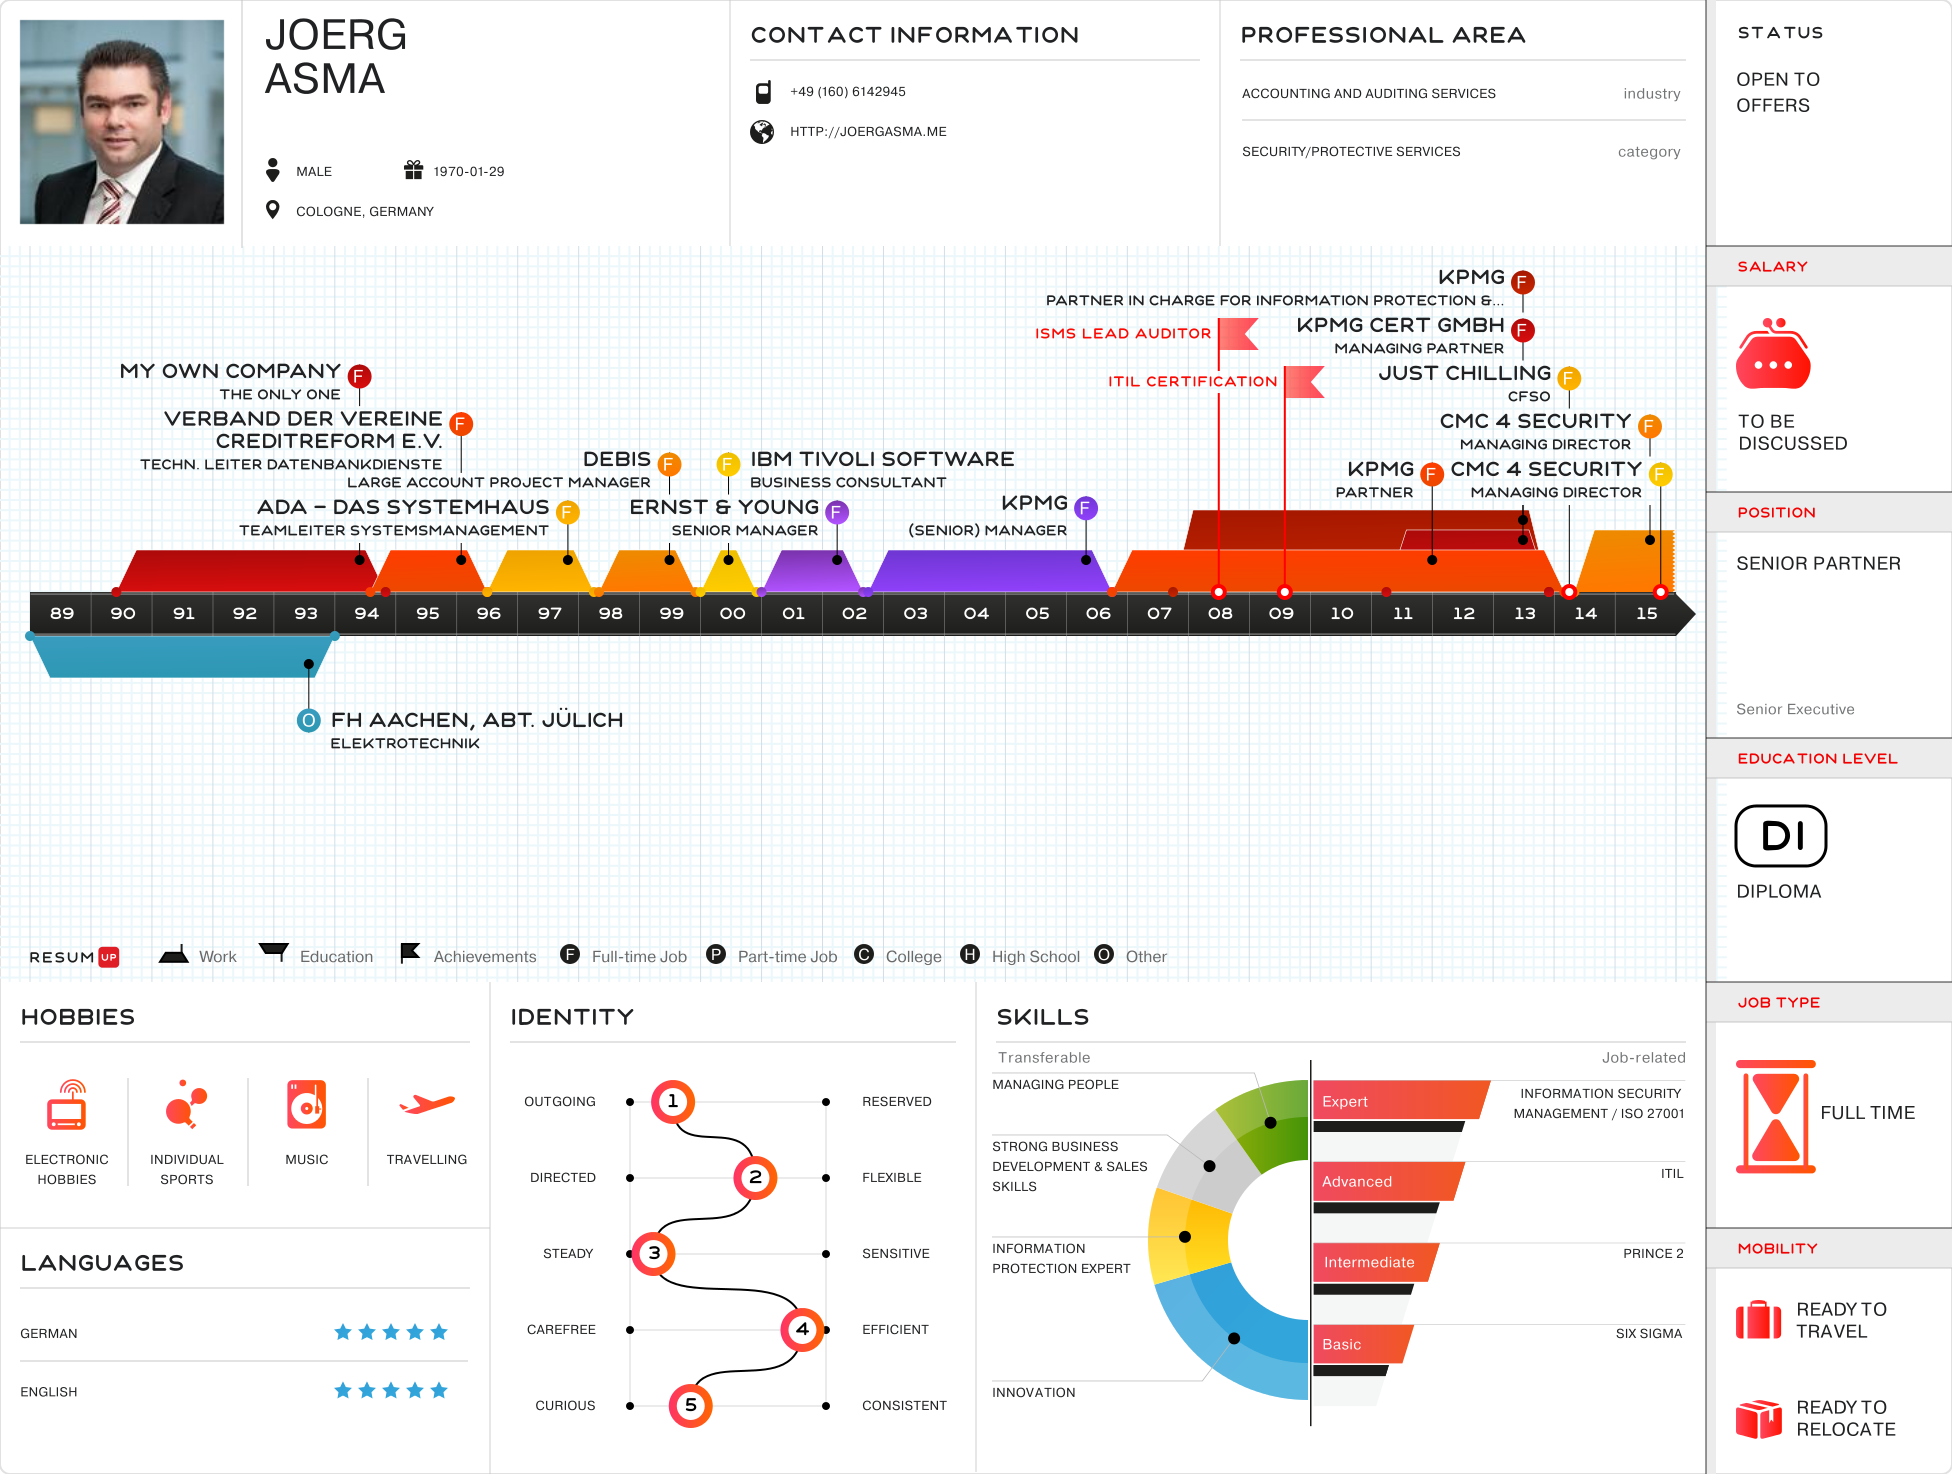 Joerg Asma - Visual Infographic resume